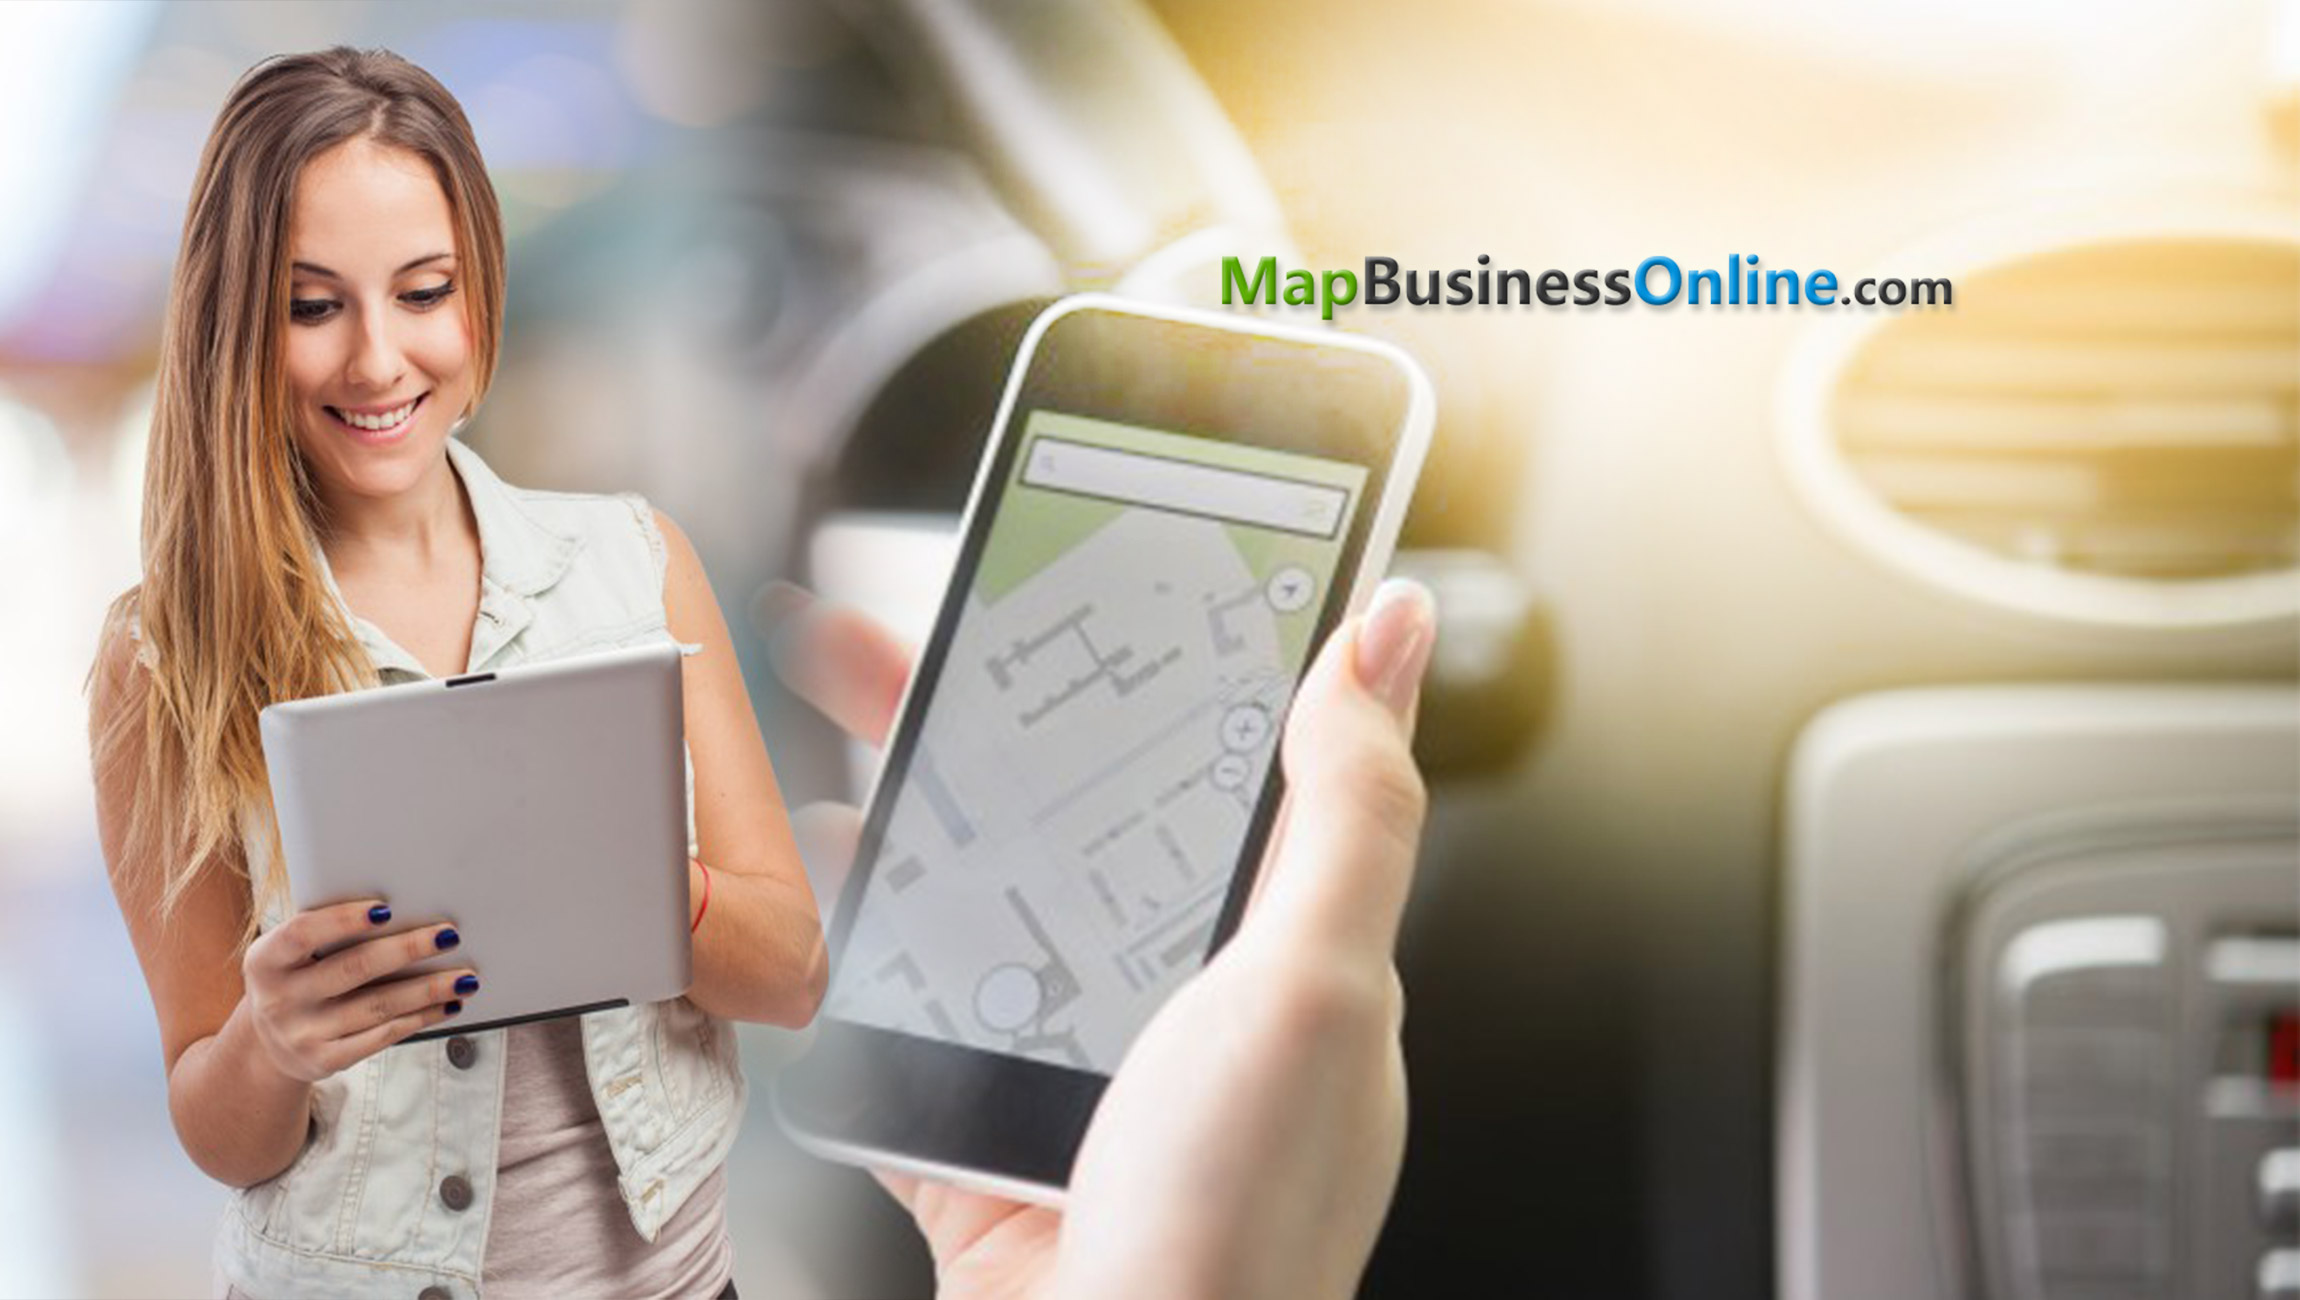 MapBusinessOnline.com Releases Business Listings for Business Analysis